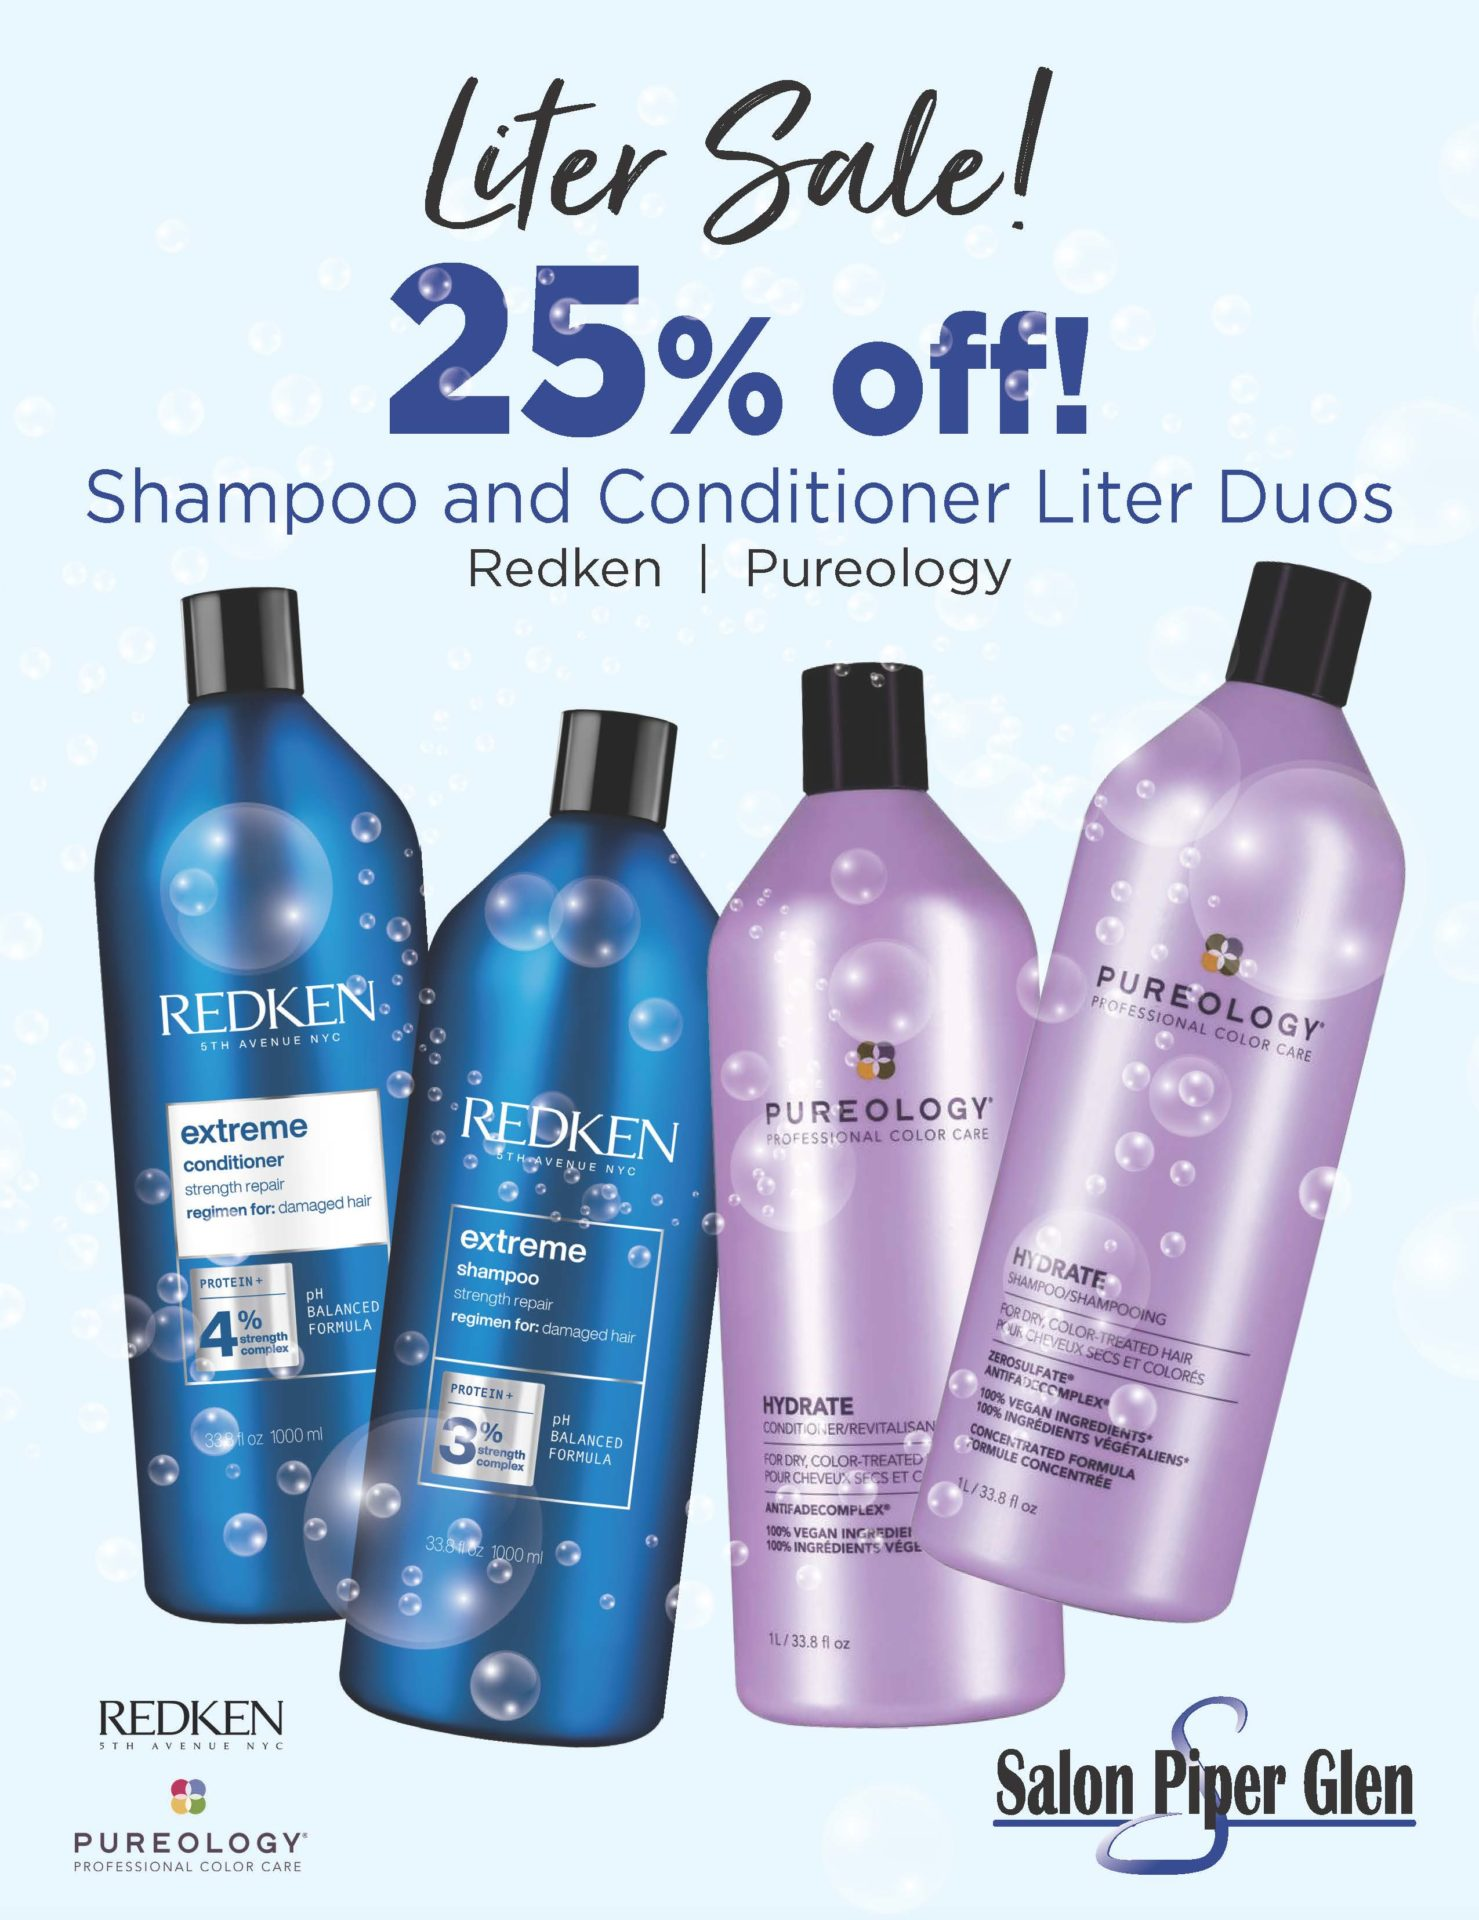 spg rdk pur liters 25off